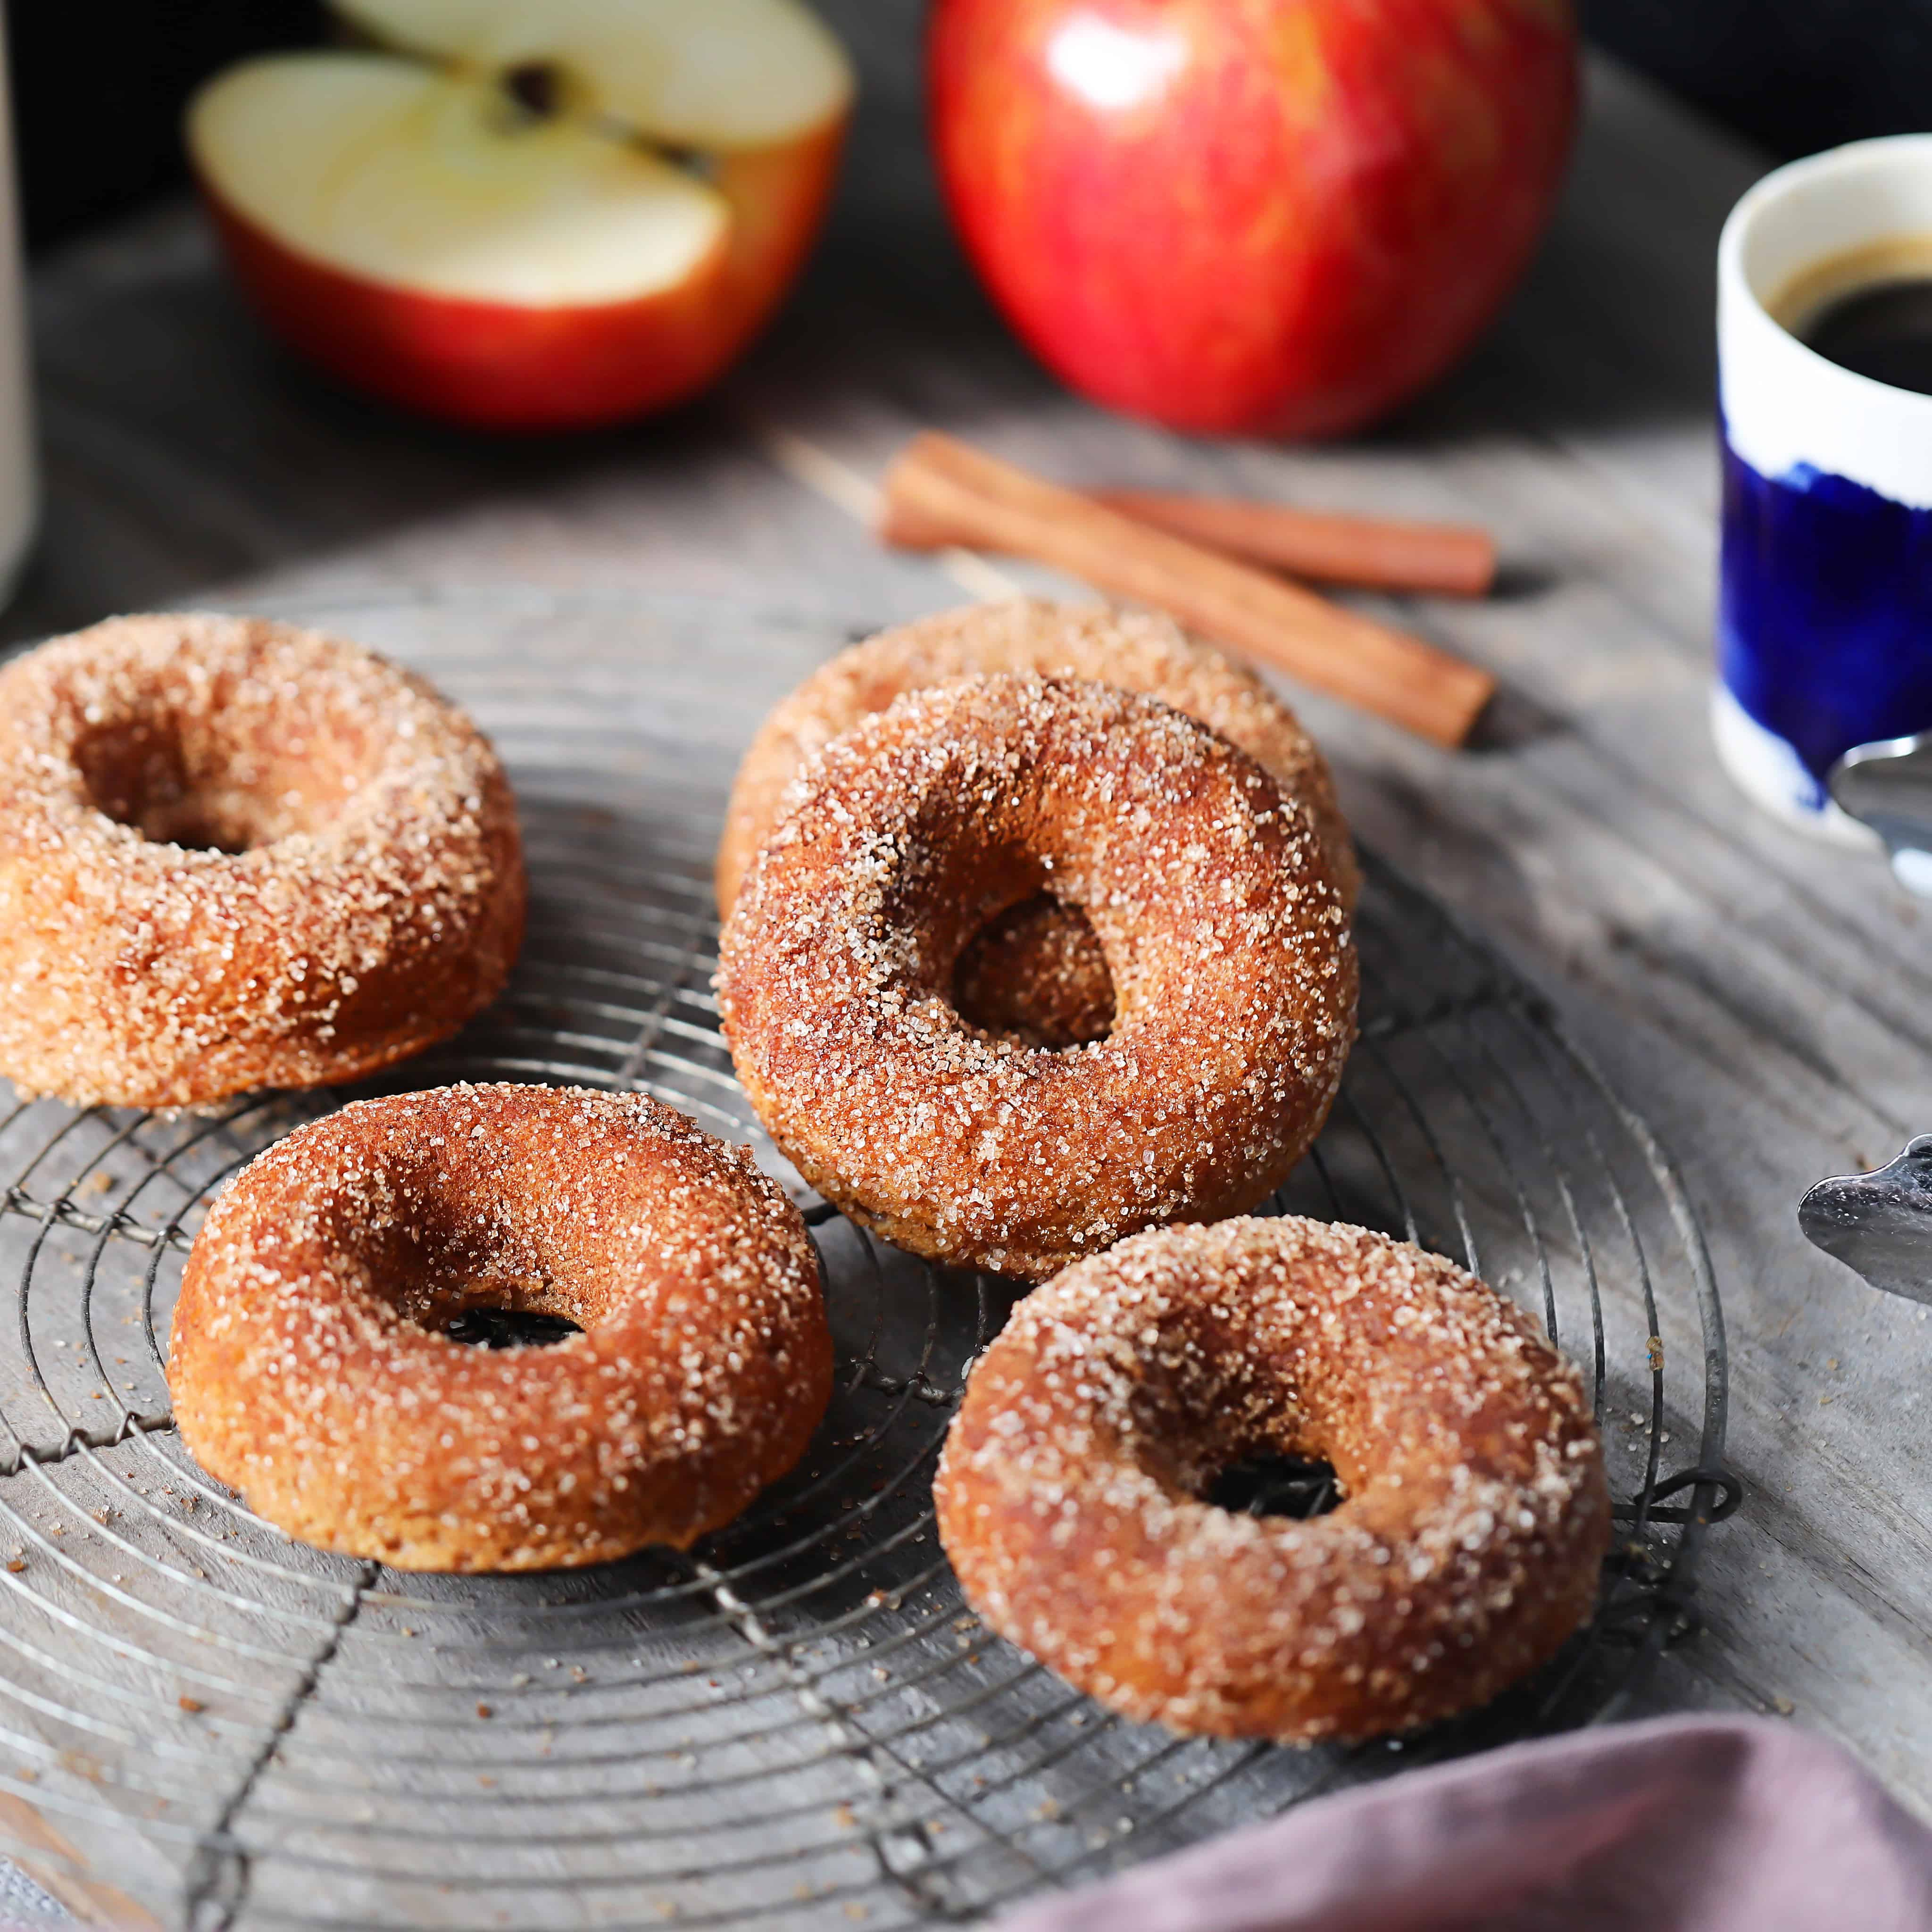 Vegan/Paleo Cinnamon Apple Donuts